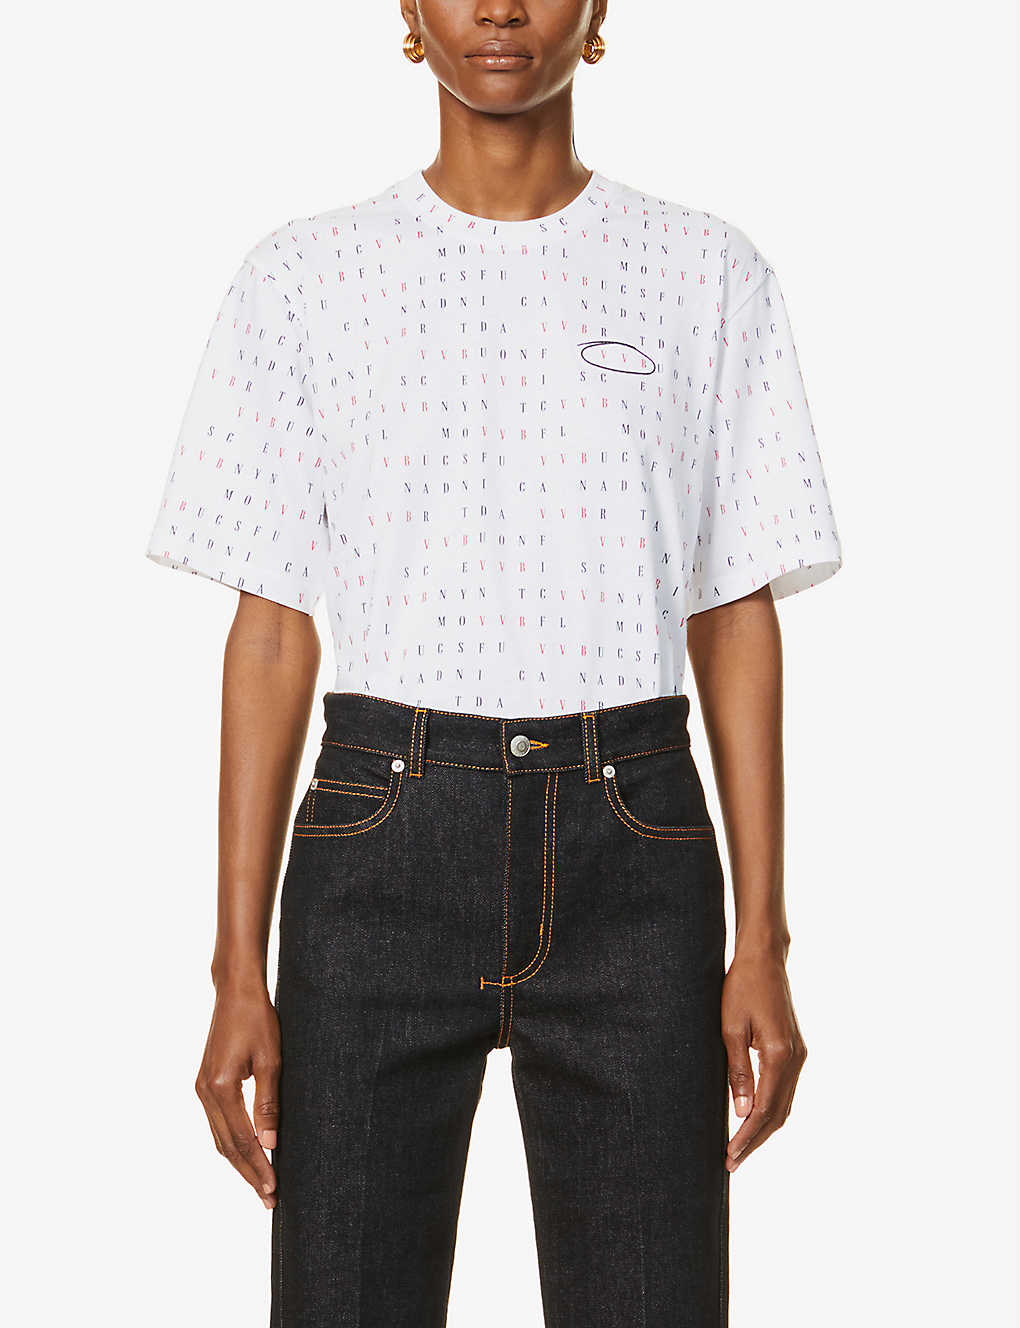 VICTORIA VICTORIA BECKHAM: Word search logo-print cotton-jersey T-shirt